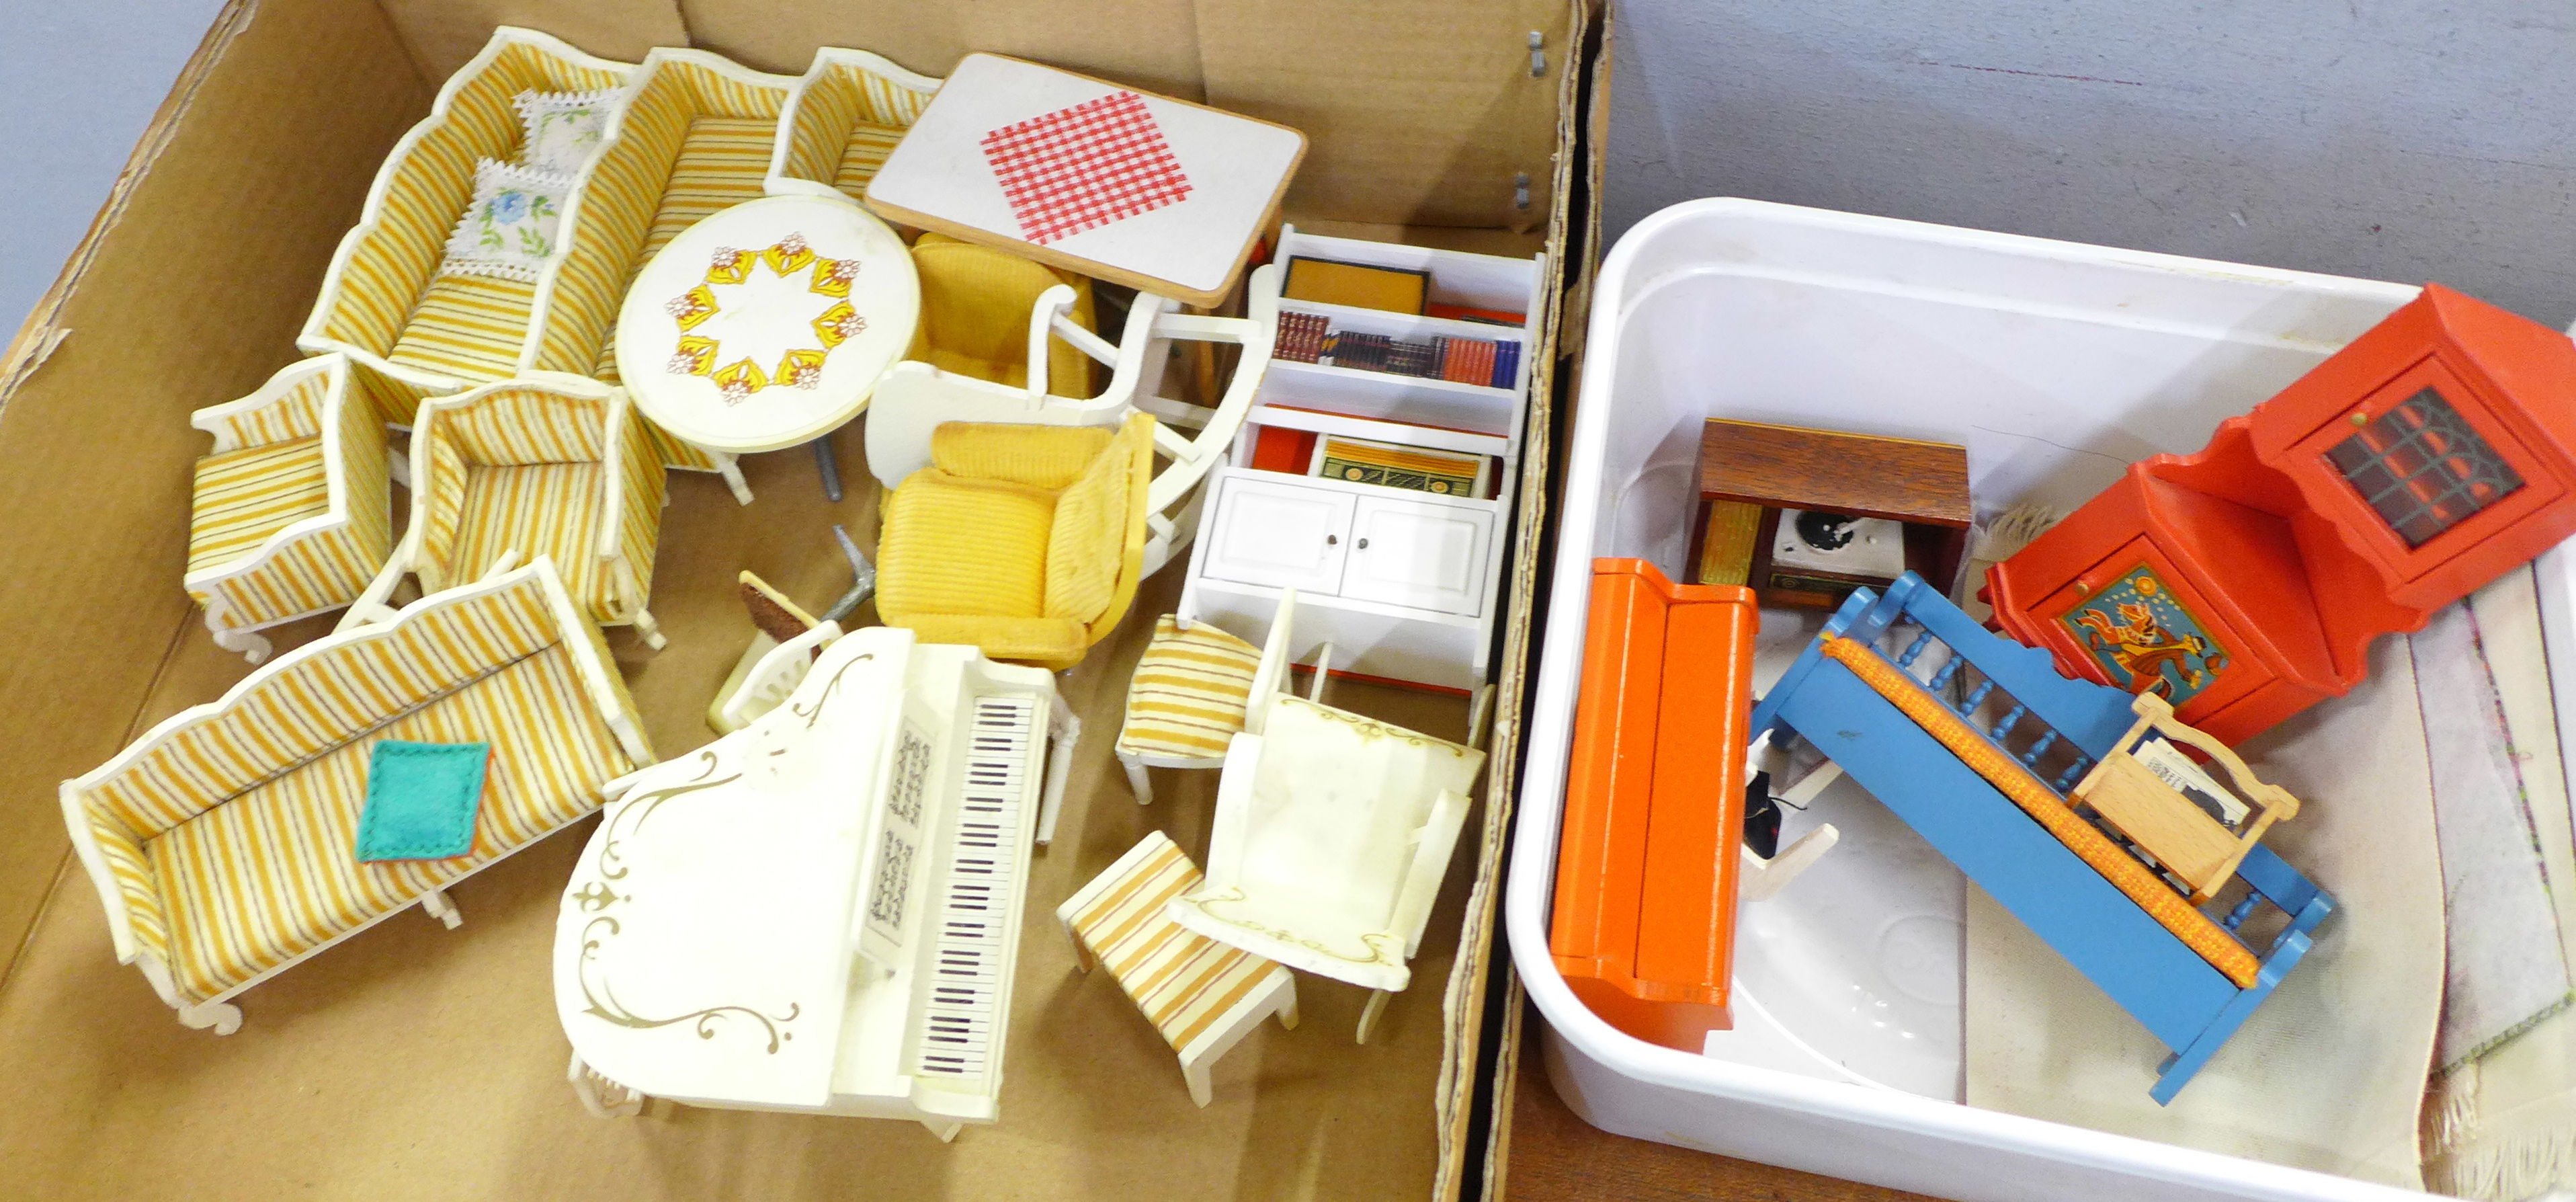 A collection of Lundby doll's house furniture